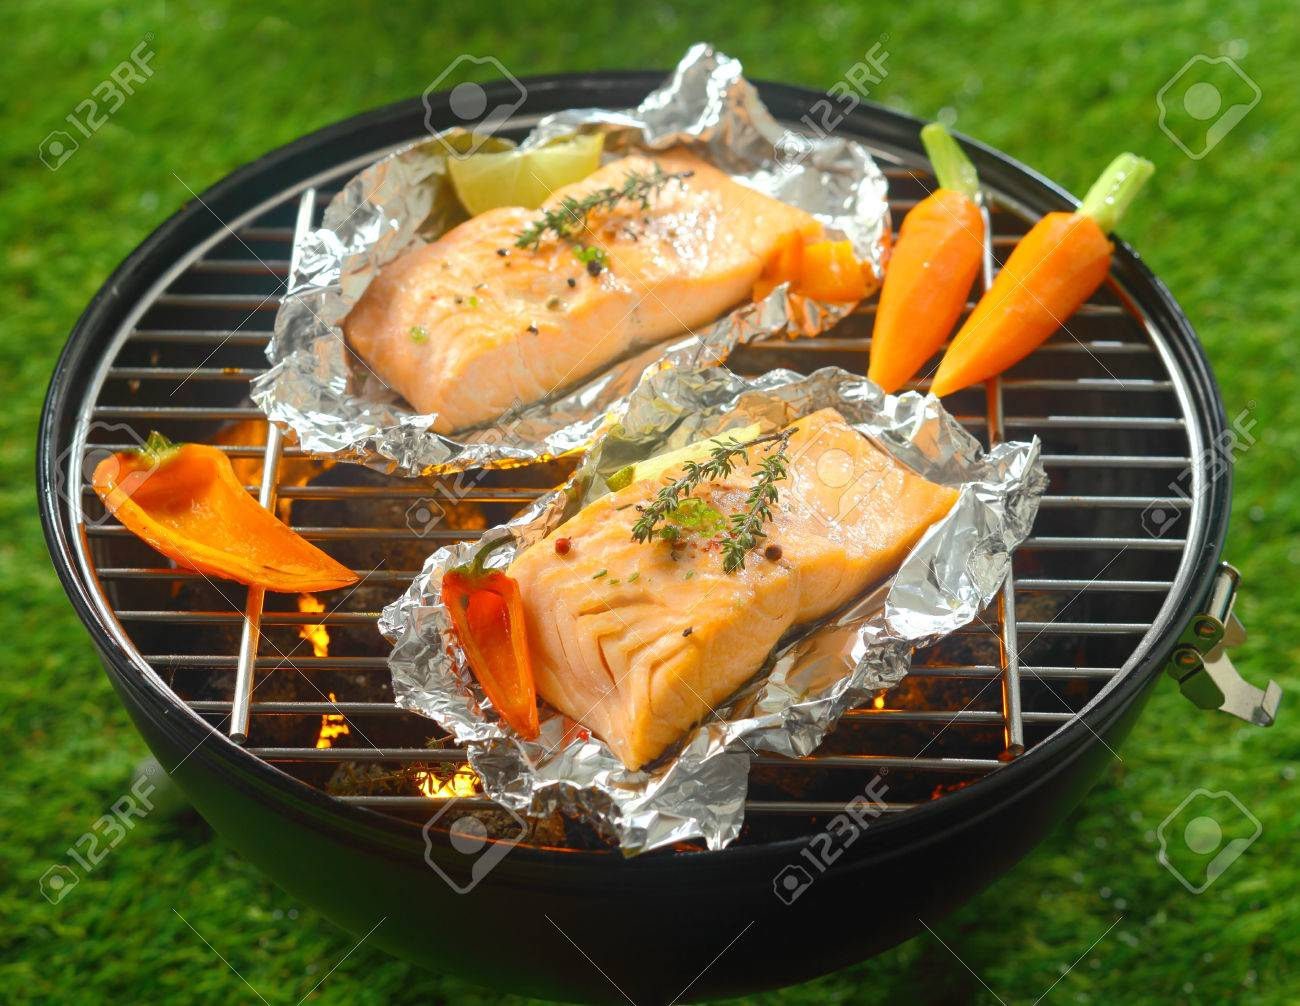 Grilled salmon steaks with baby vegetables cooking on tin foil grilled salmon steaks with baby vegetables cooking on tin foil over a barbecue outdoors in summer ccuart Gallery